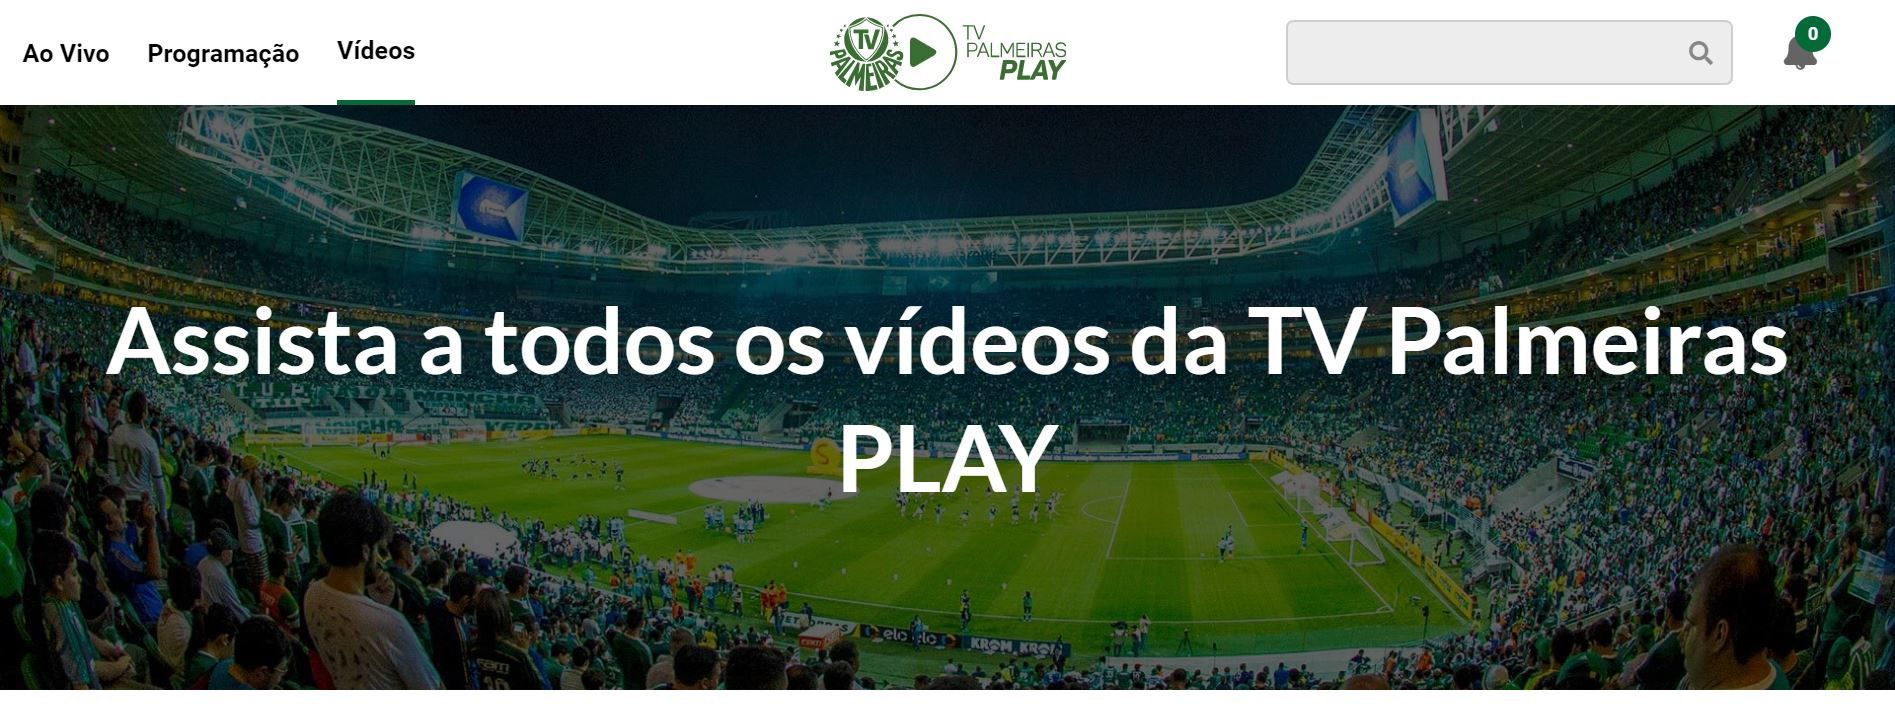 screen capture video tv palmeiras play